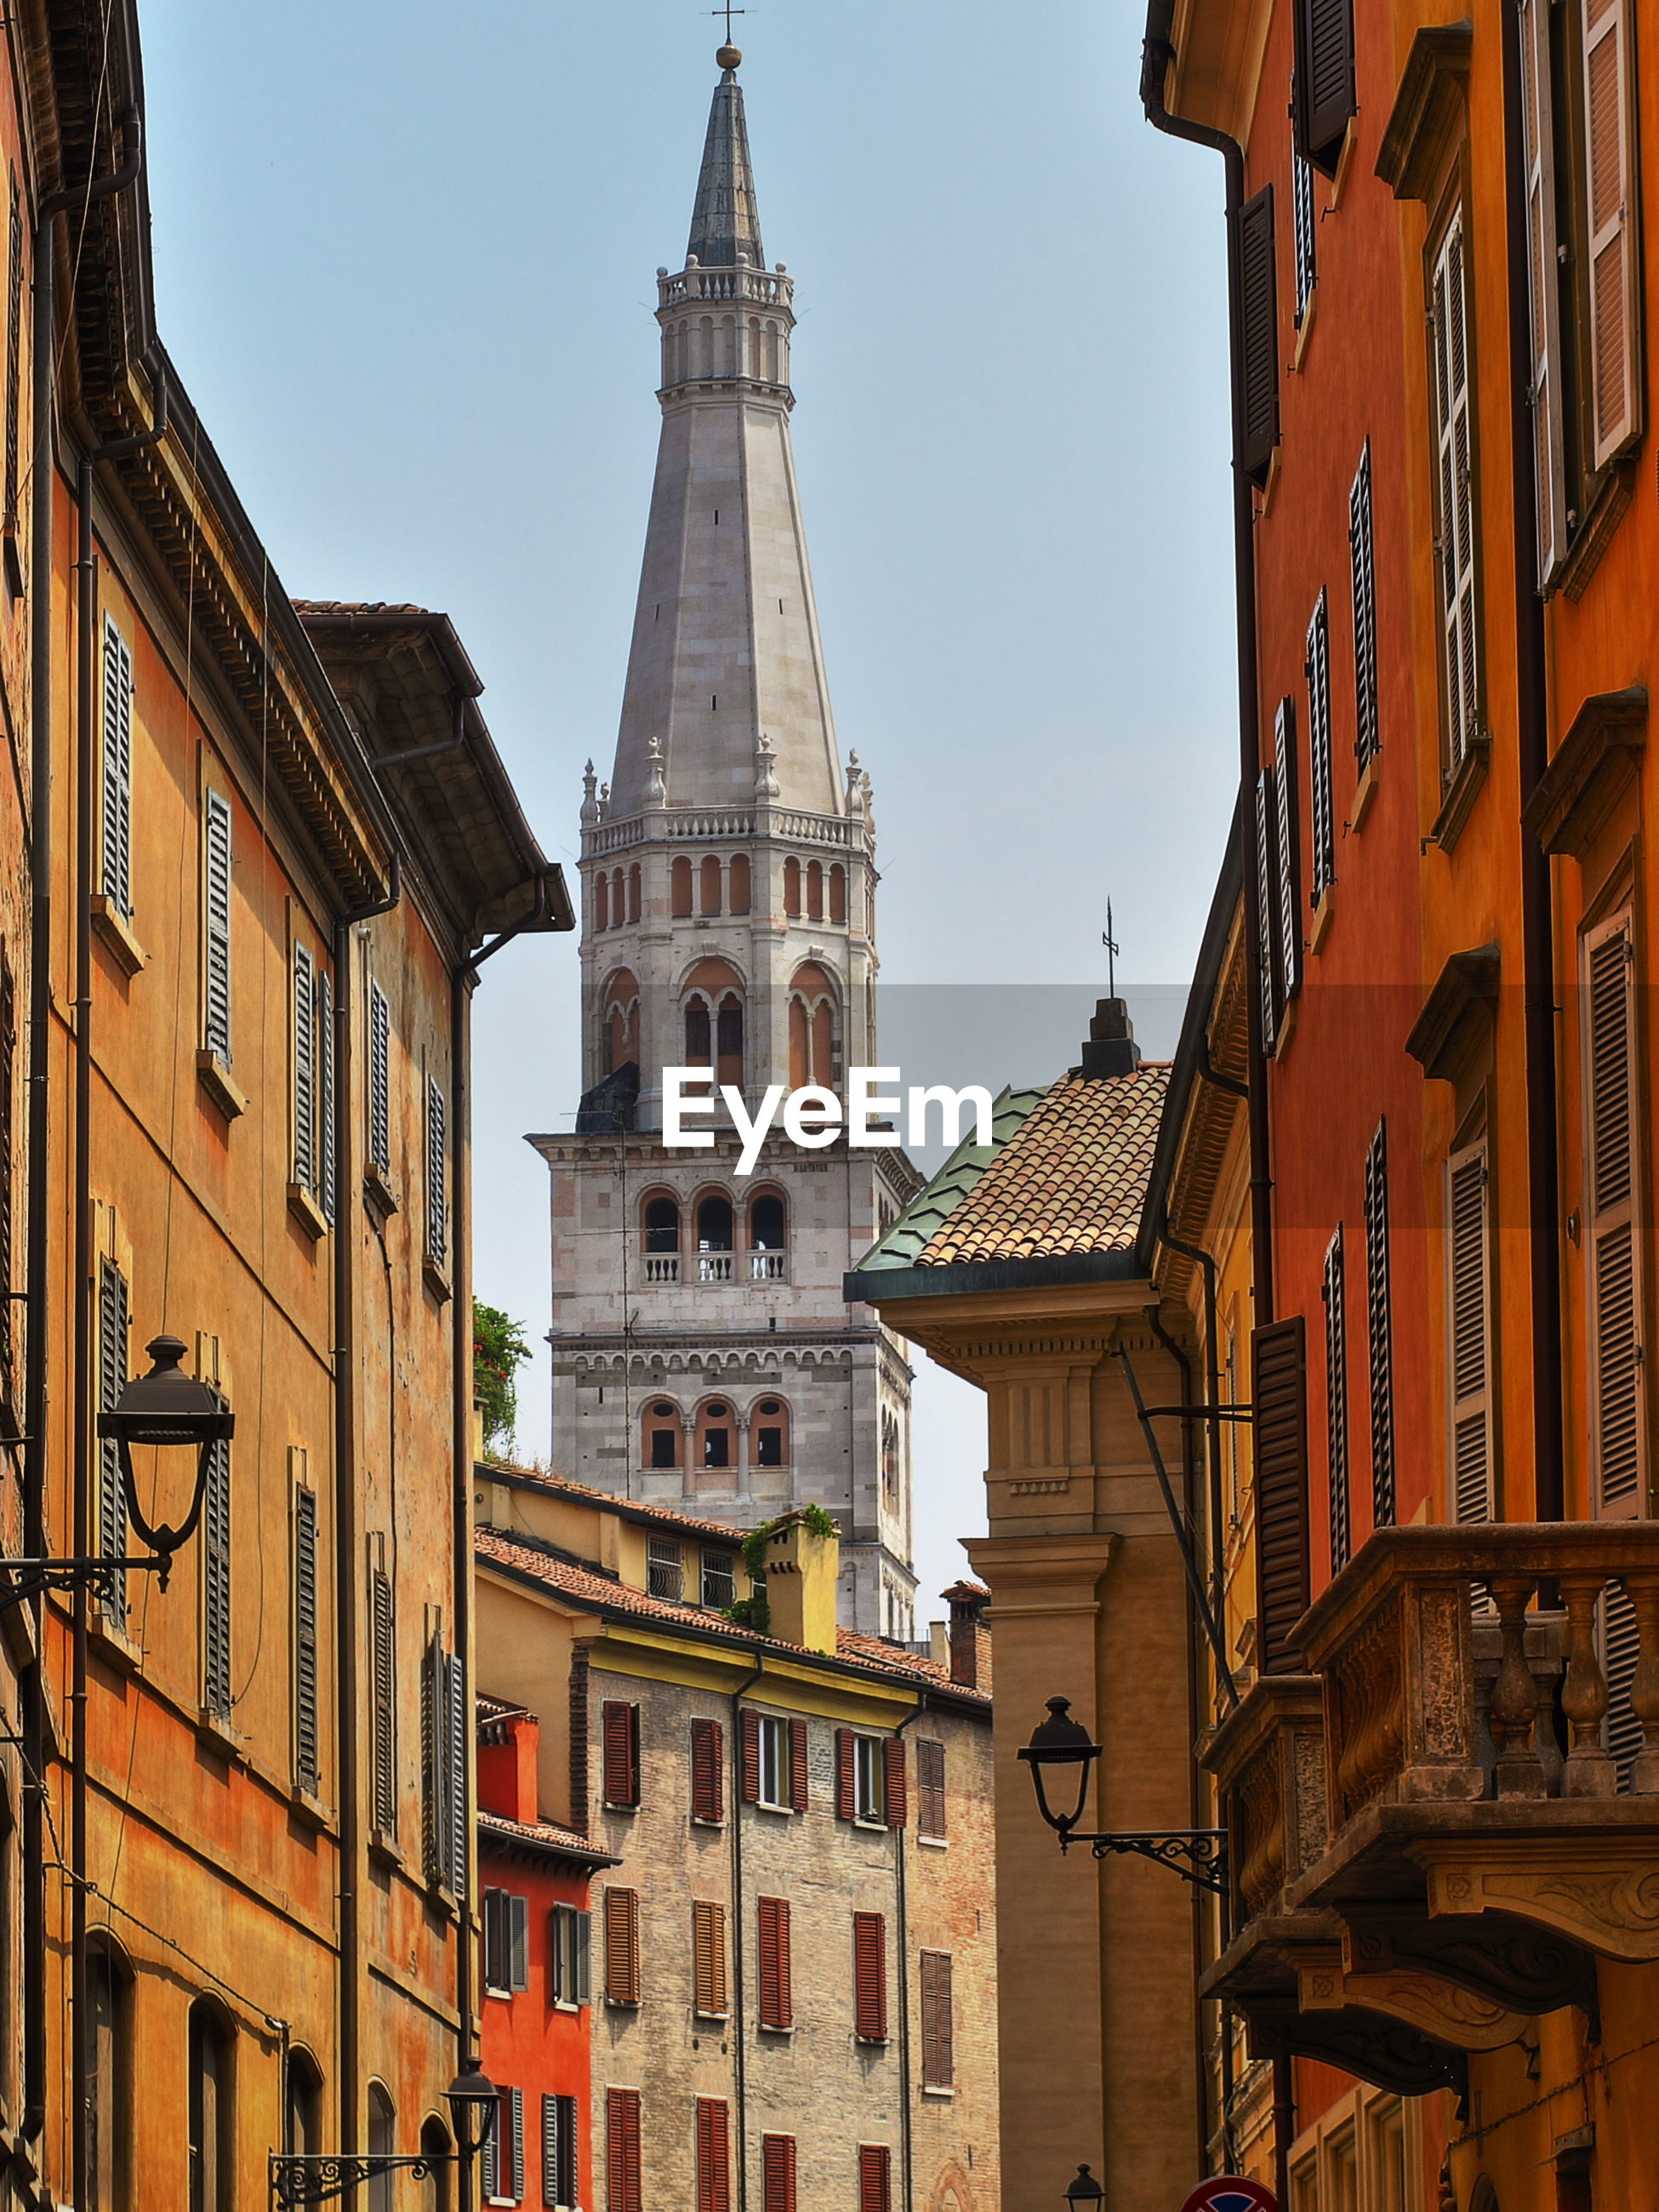 Modena tower bell named ghirlandina between buildings against clear sky